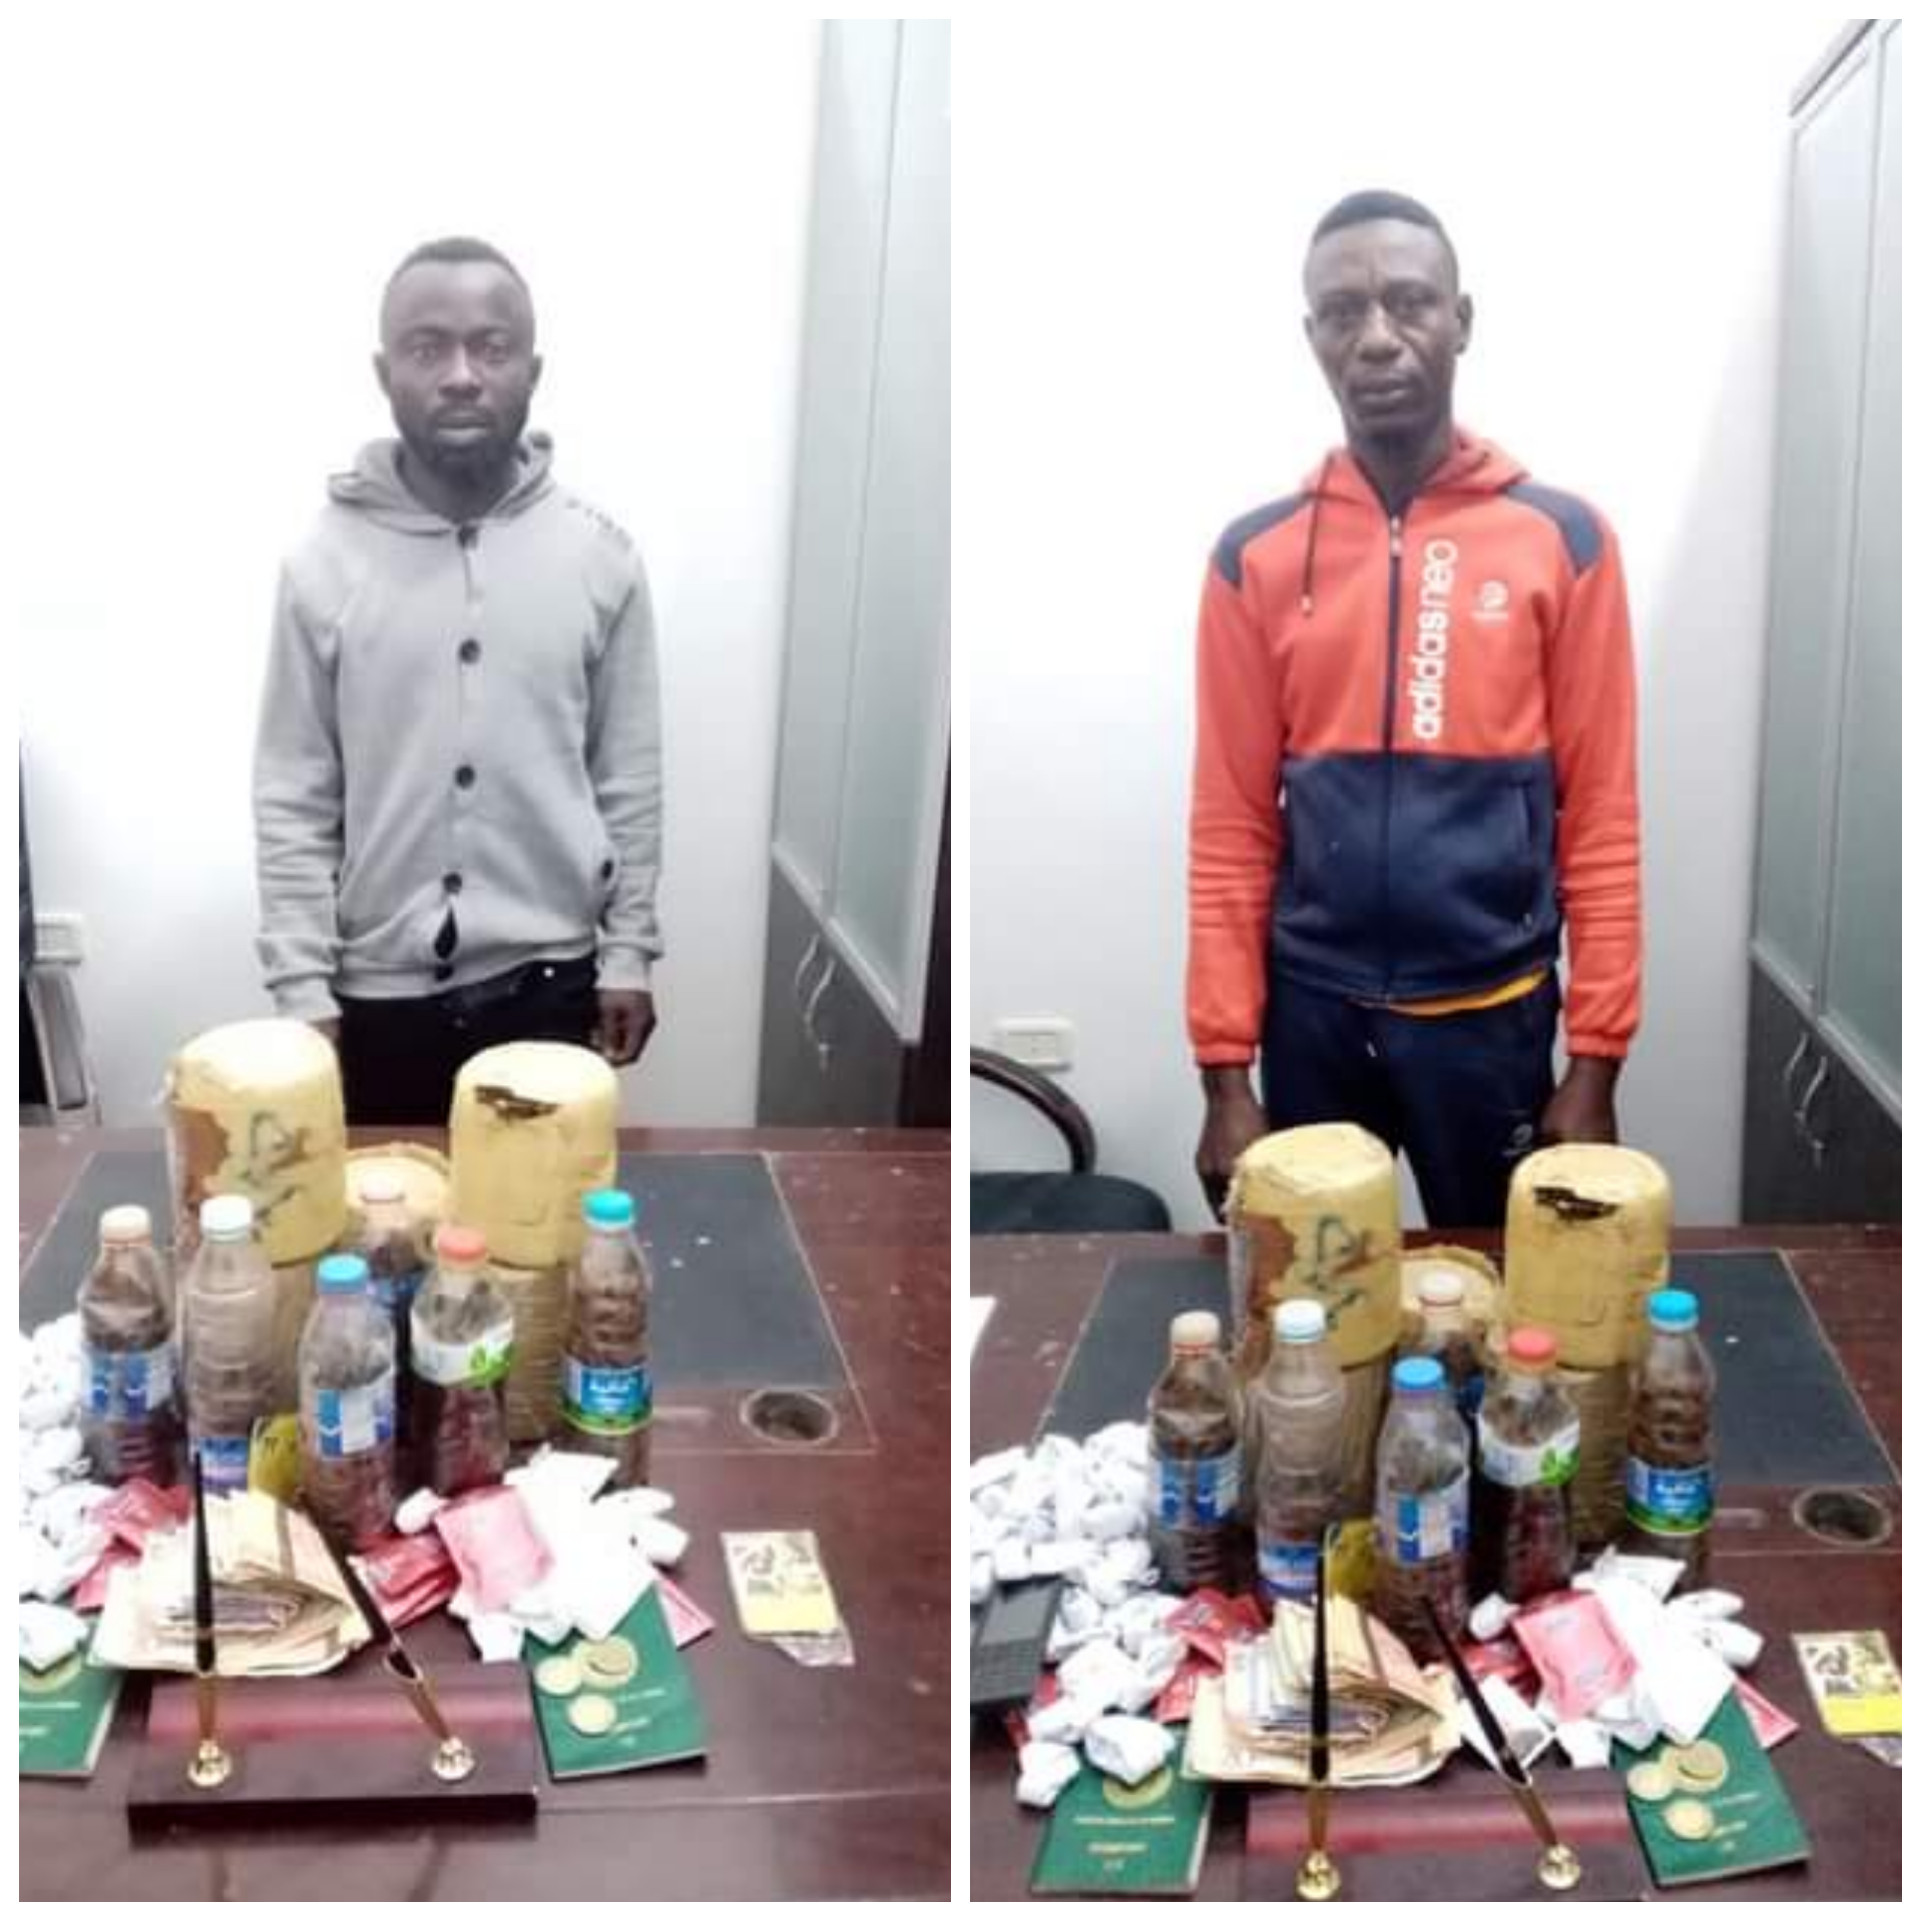 TWO NIGERIAN NATIONALS ARRESTED IN LIBYA FOR DRUG AND SEX TRAFFICKING.PHOTOS